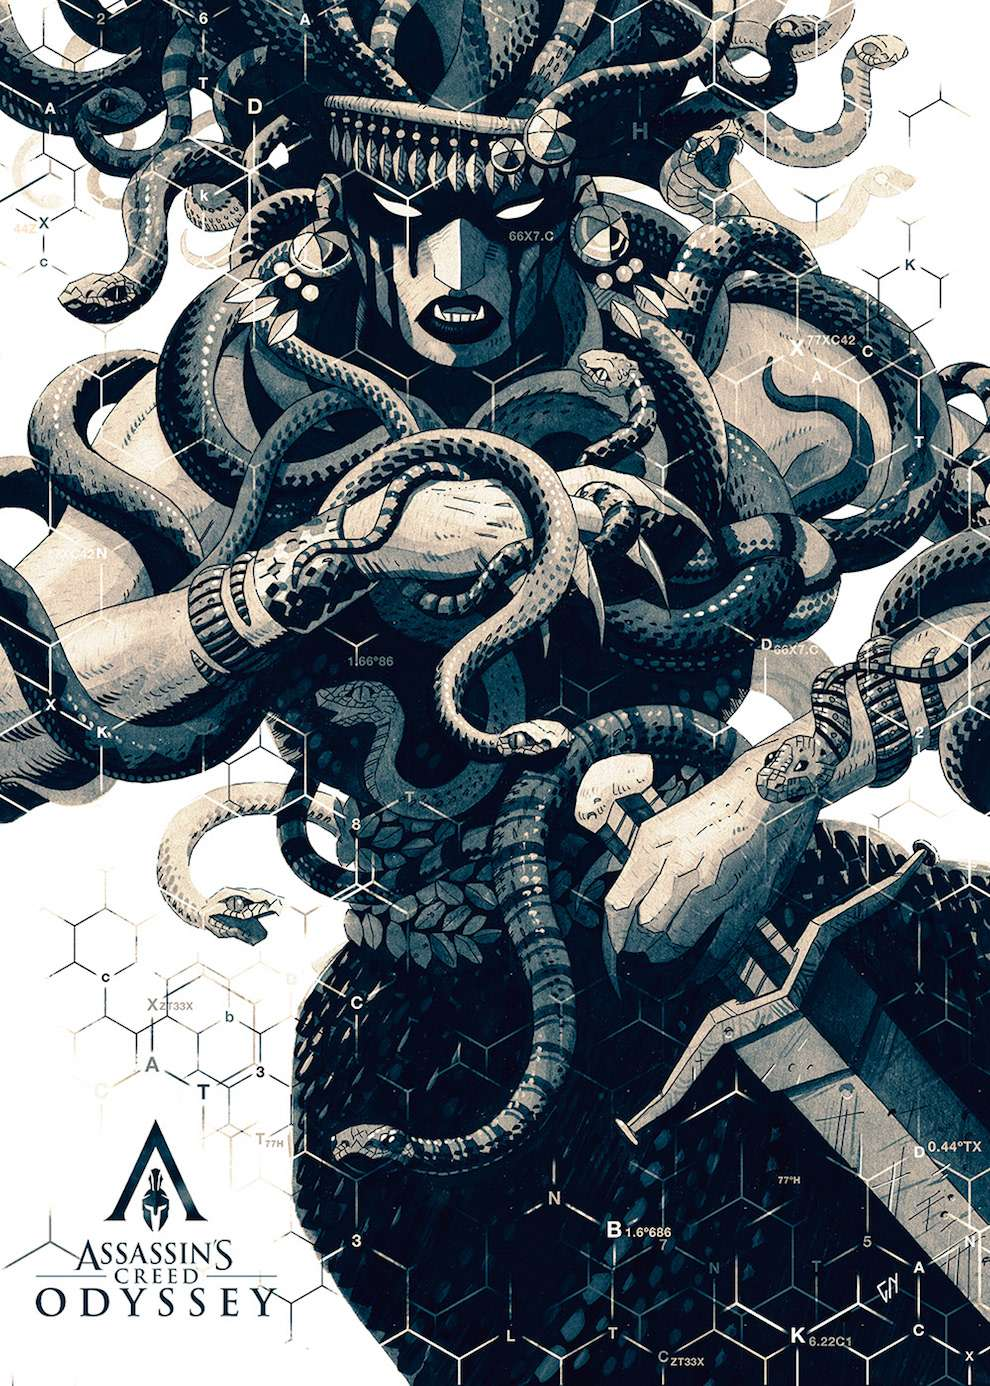 Coke Navarro, illustration of greek god medusa for video game assassin's creed